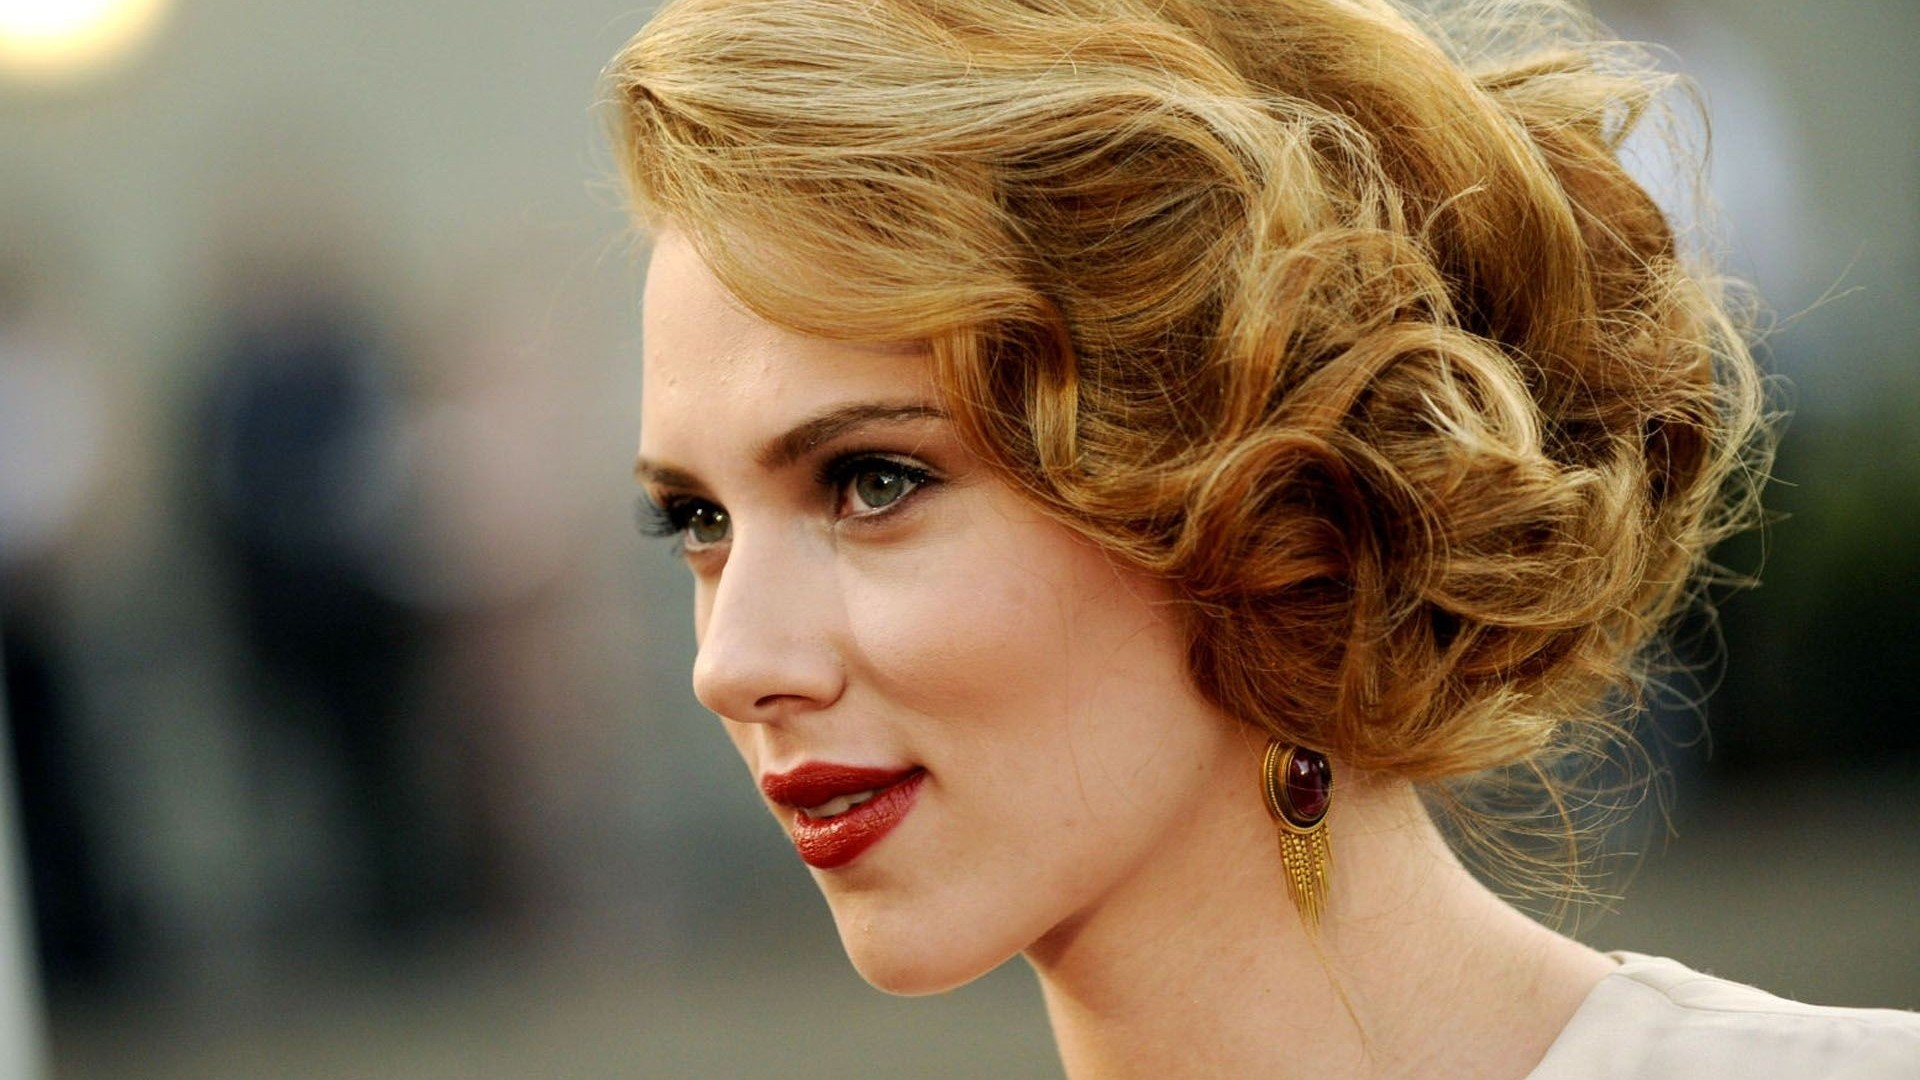 Scarlett Johansson to star in the live-action Ghost in the Shell movie